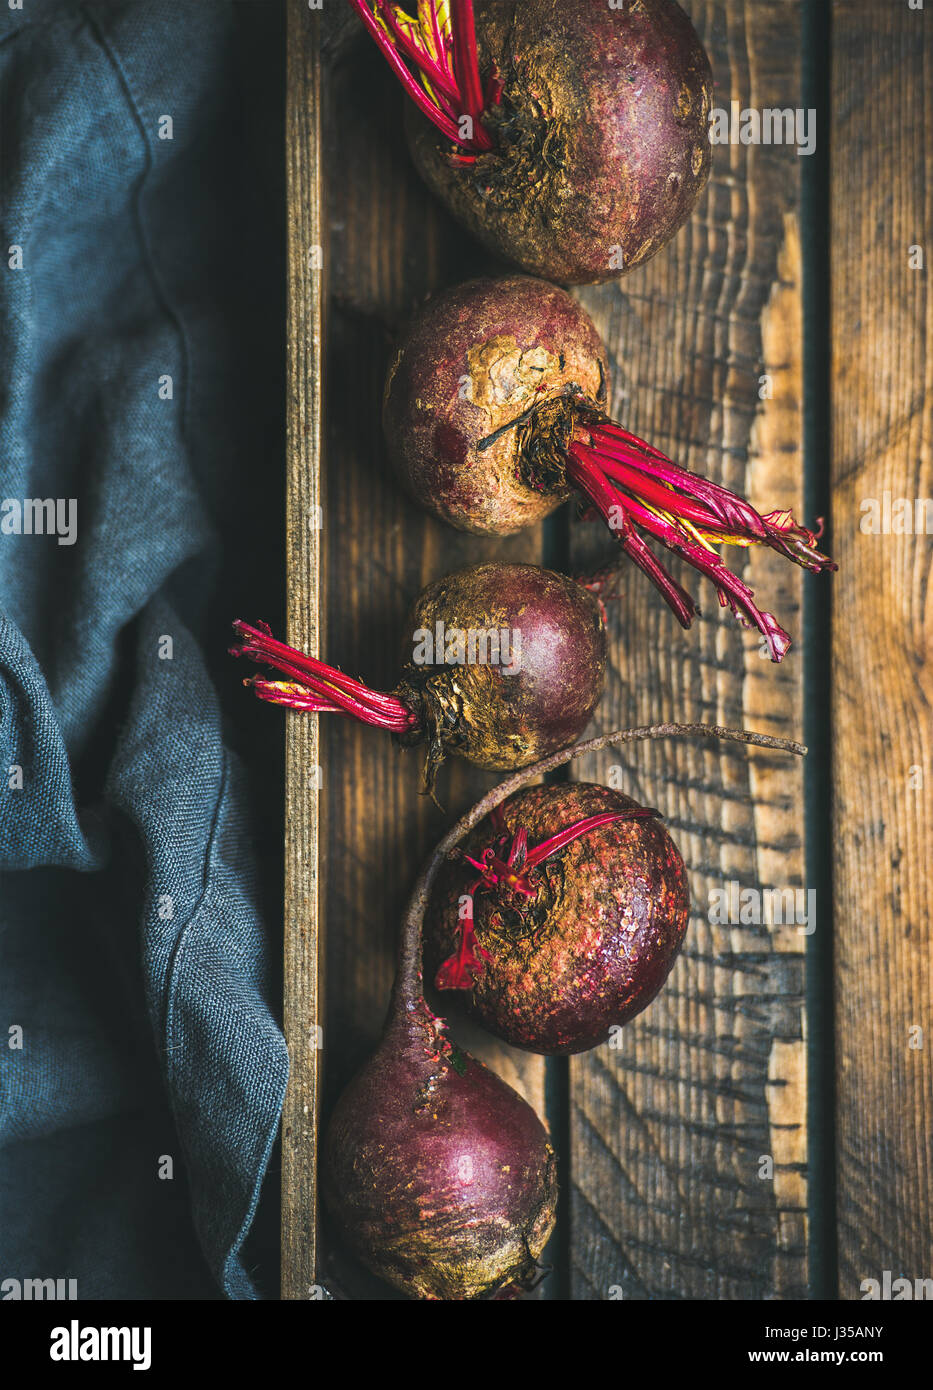 Raw organic purple beetroots in wooden box - Stock Image